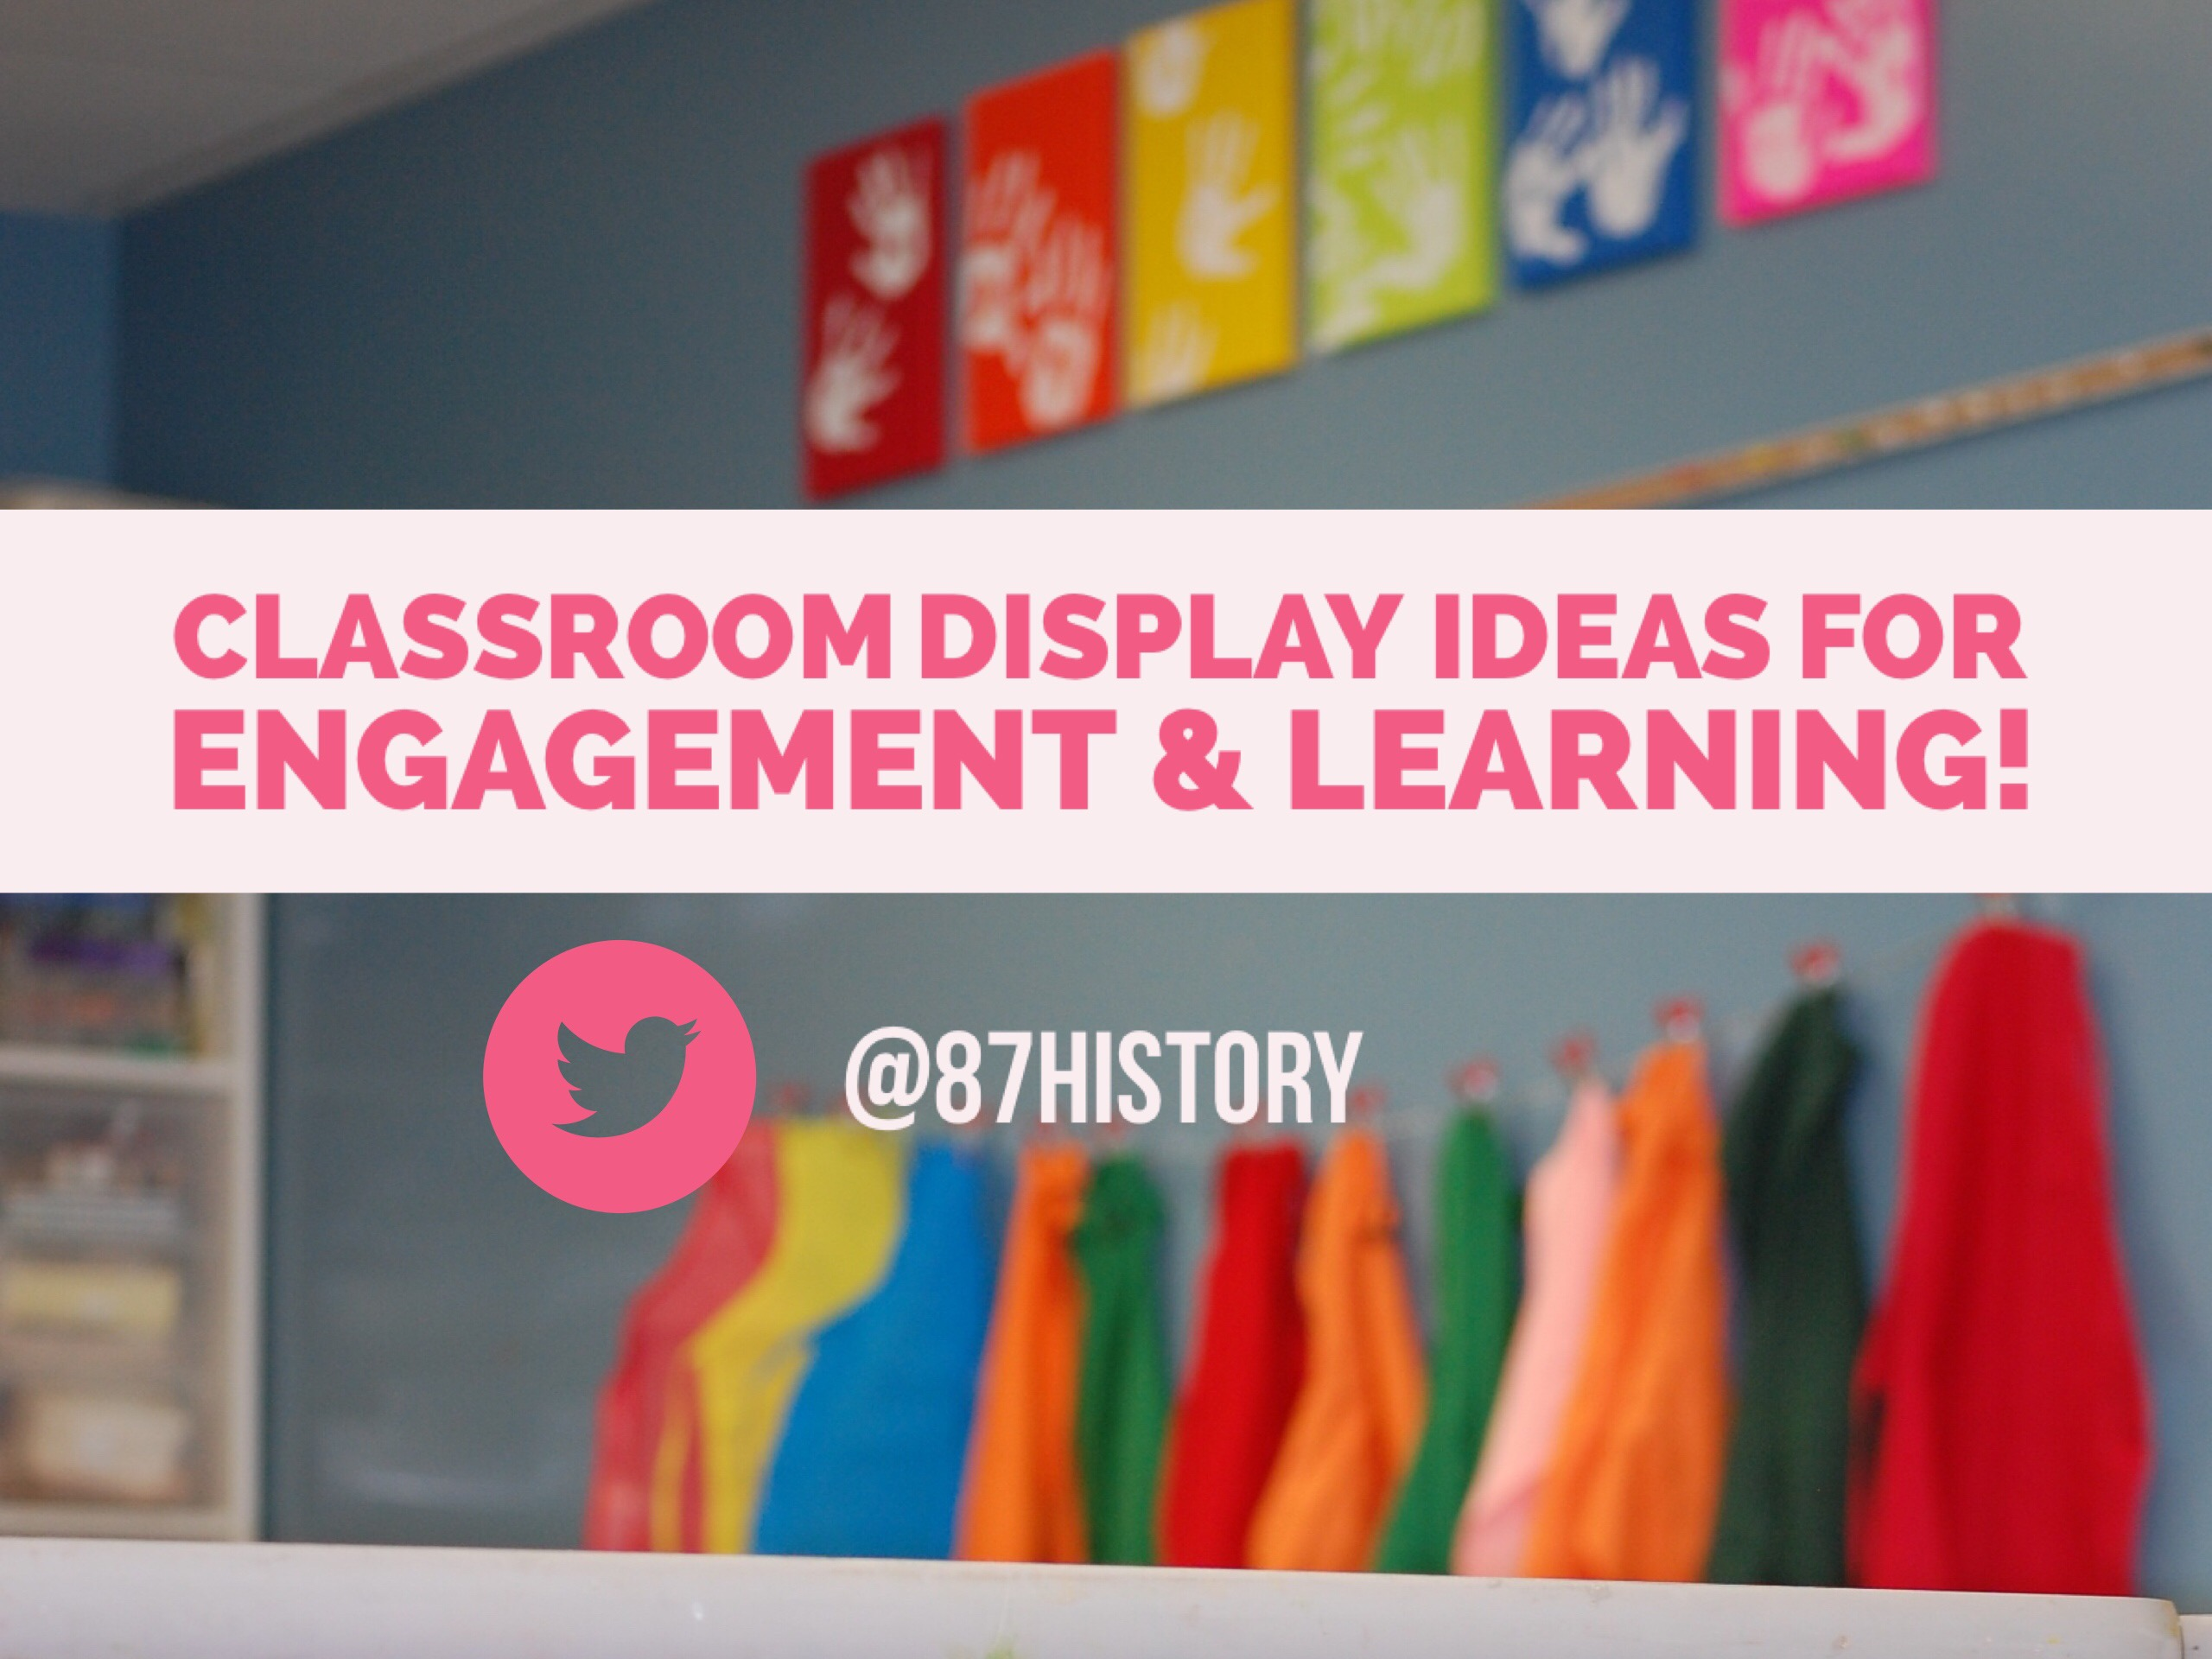 Classroom displays for engagement and learning!